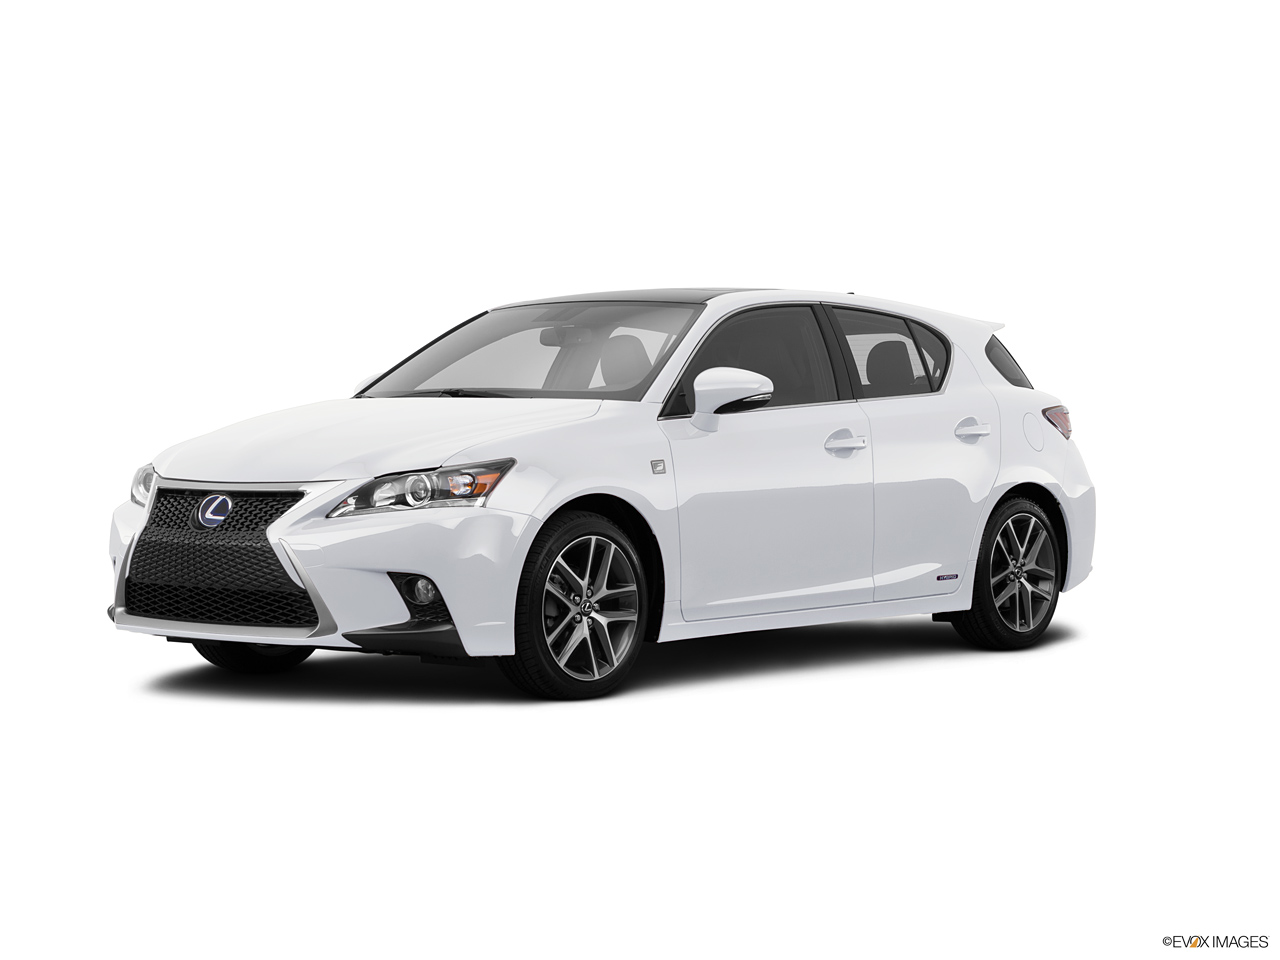 lexus service by top rated mechanics at the convenience of your home or office [ 1280 x 960 Pixel ]